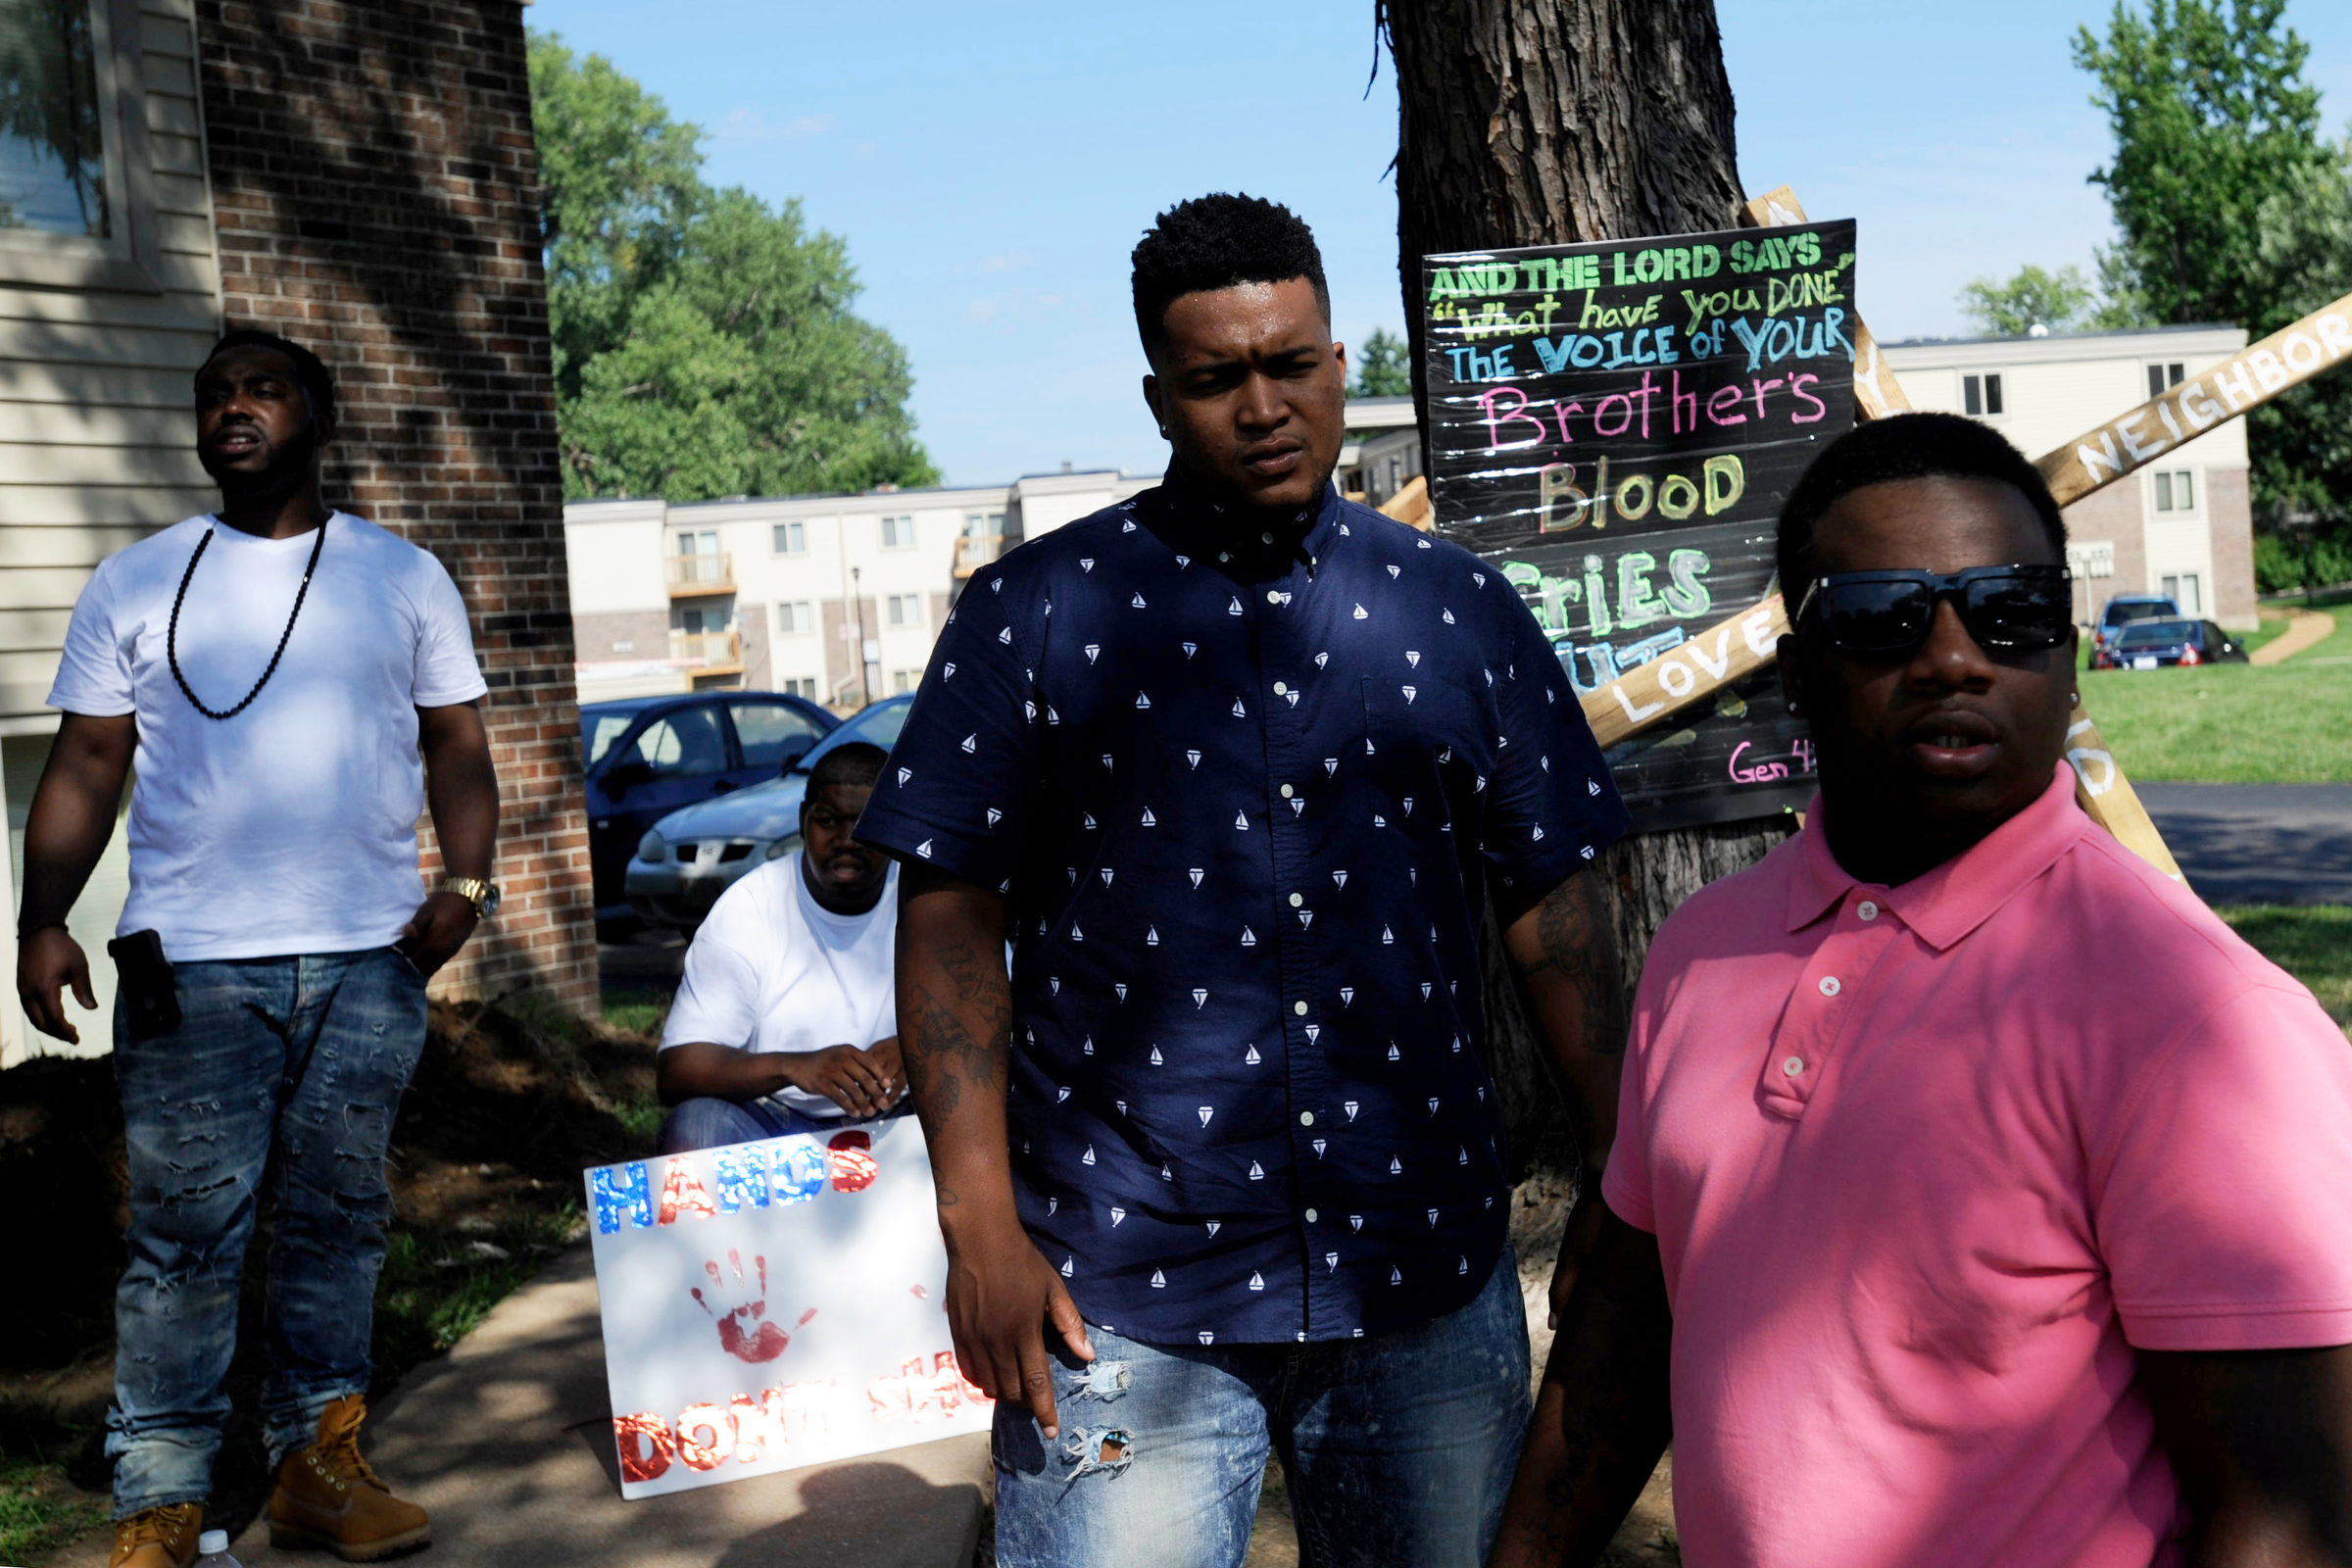 A number of young men from who grew up in the Ferguson neighborhood and surrounding areas returned to the city after the police shooting death of Michael Brown,stopping to pay their respects at the site of Brown's death on Canfield Ave.